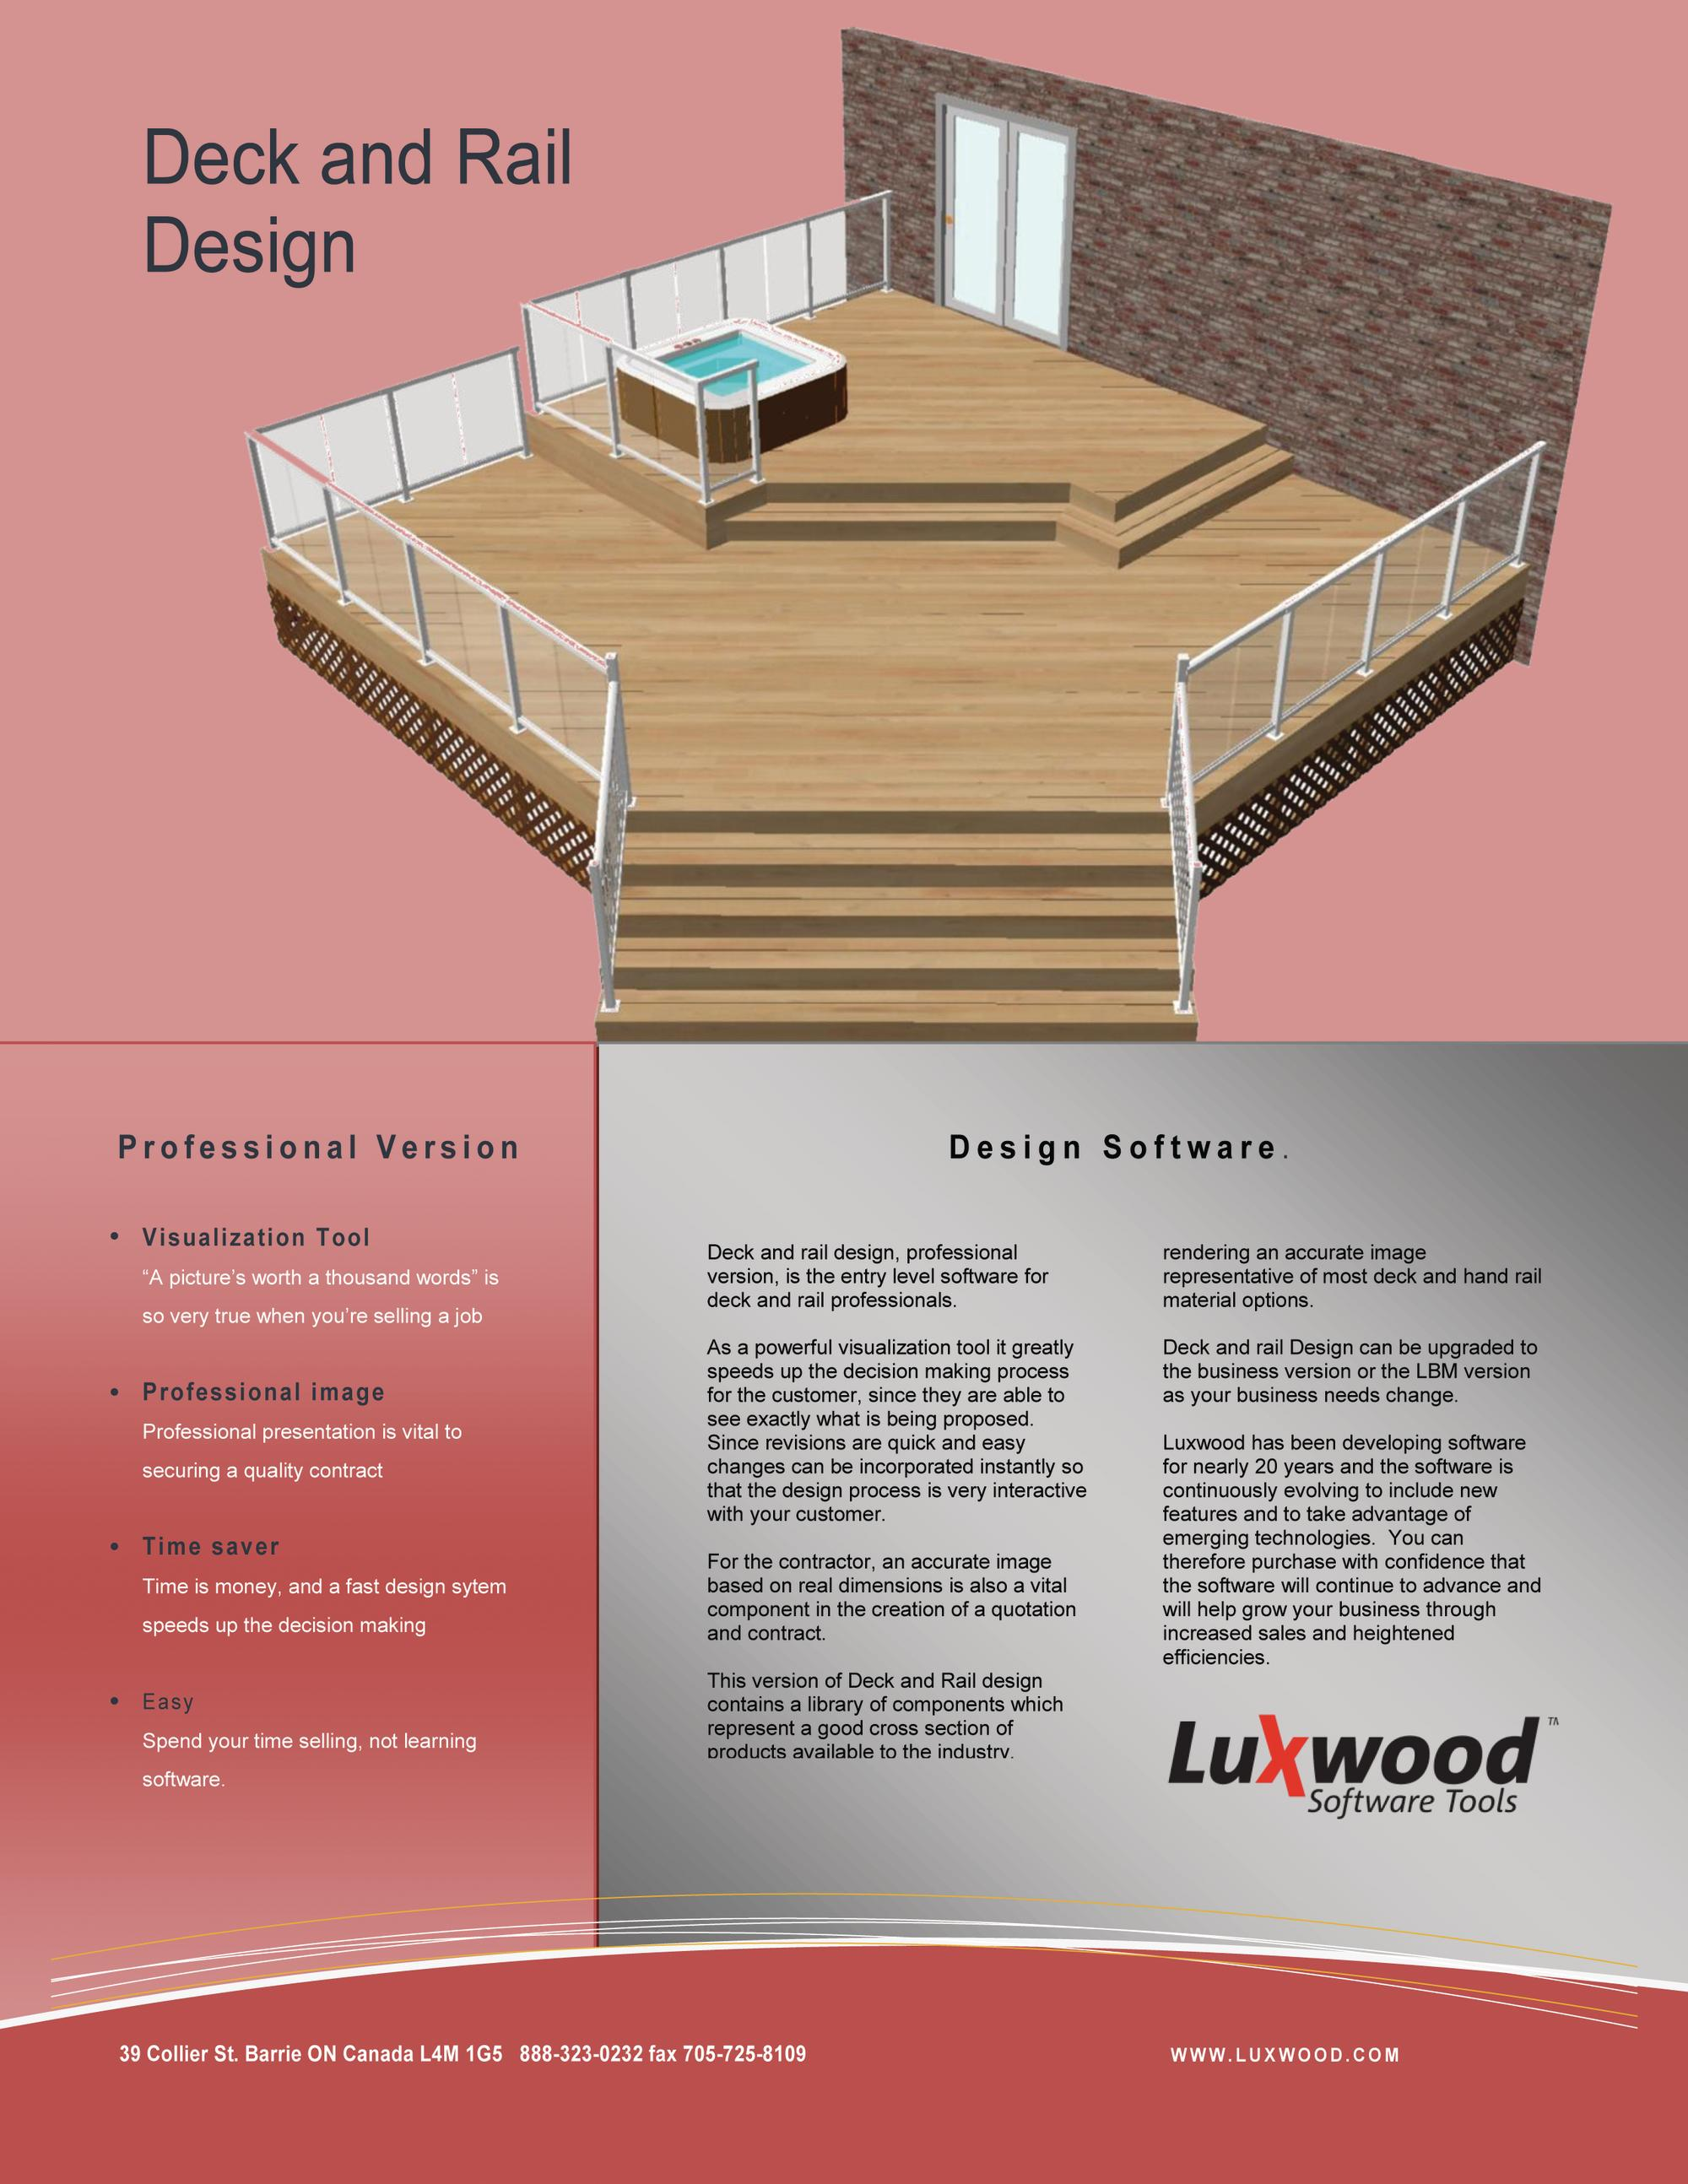 Deck design software from luxwood remodeling decks for Design and build software